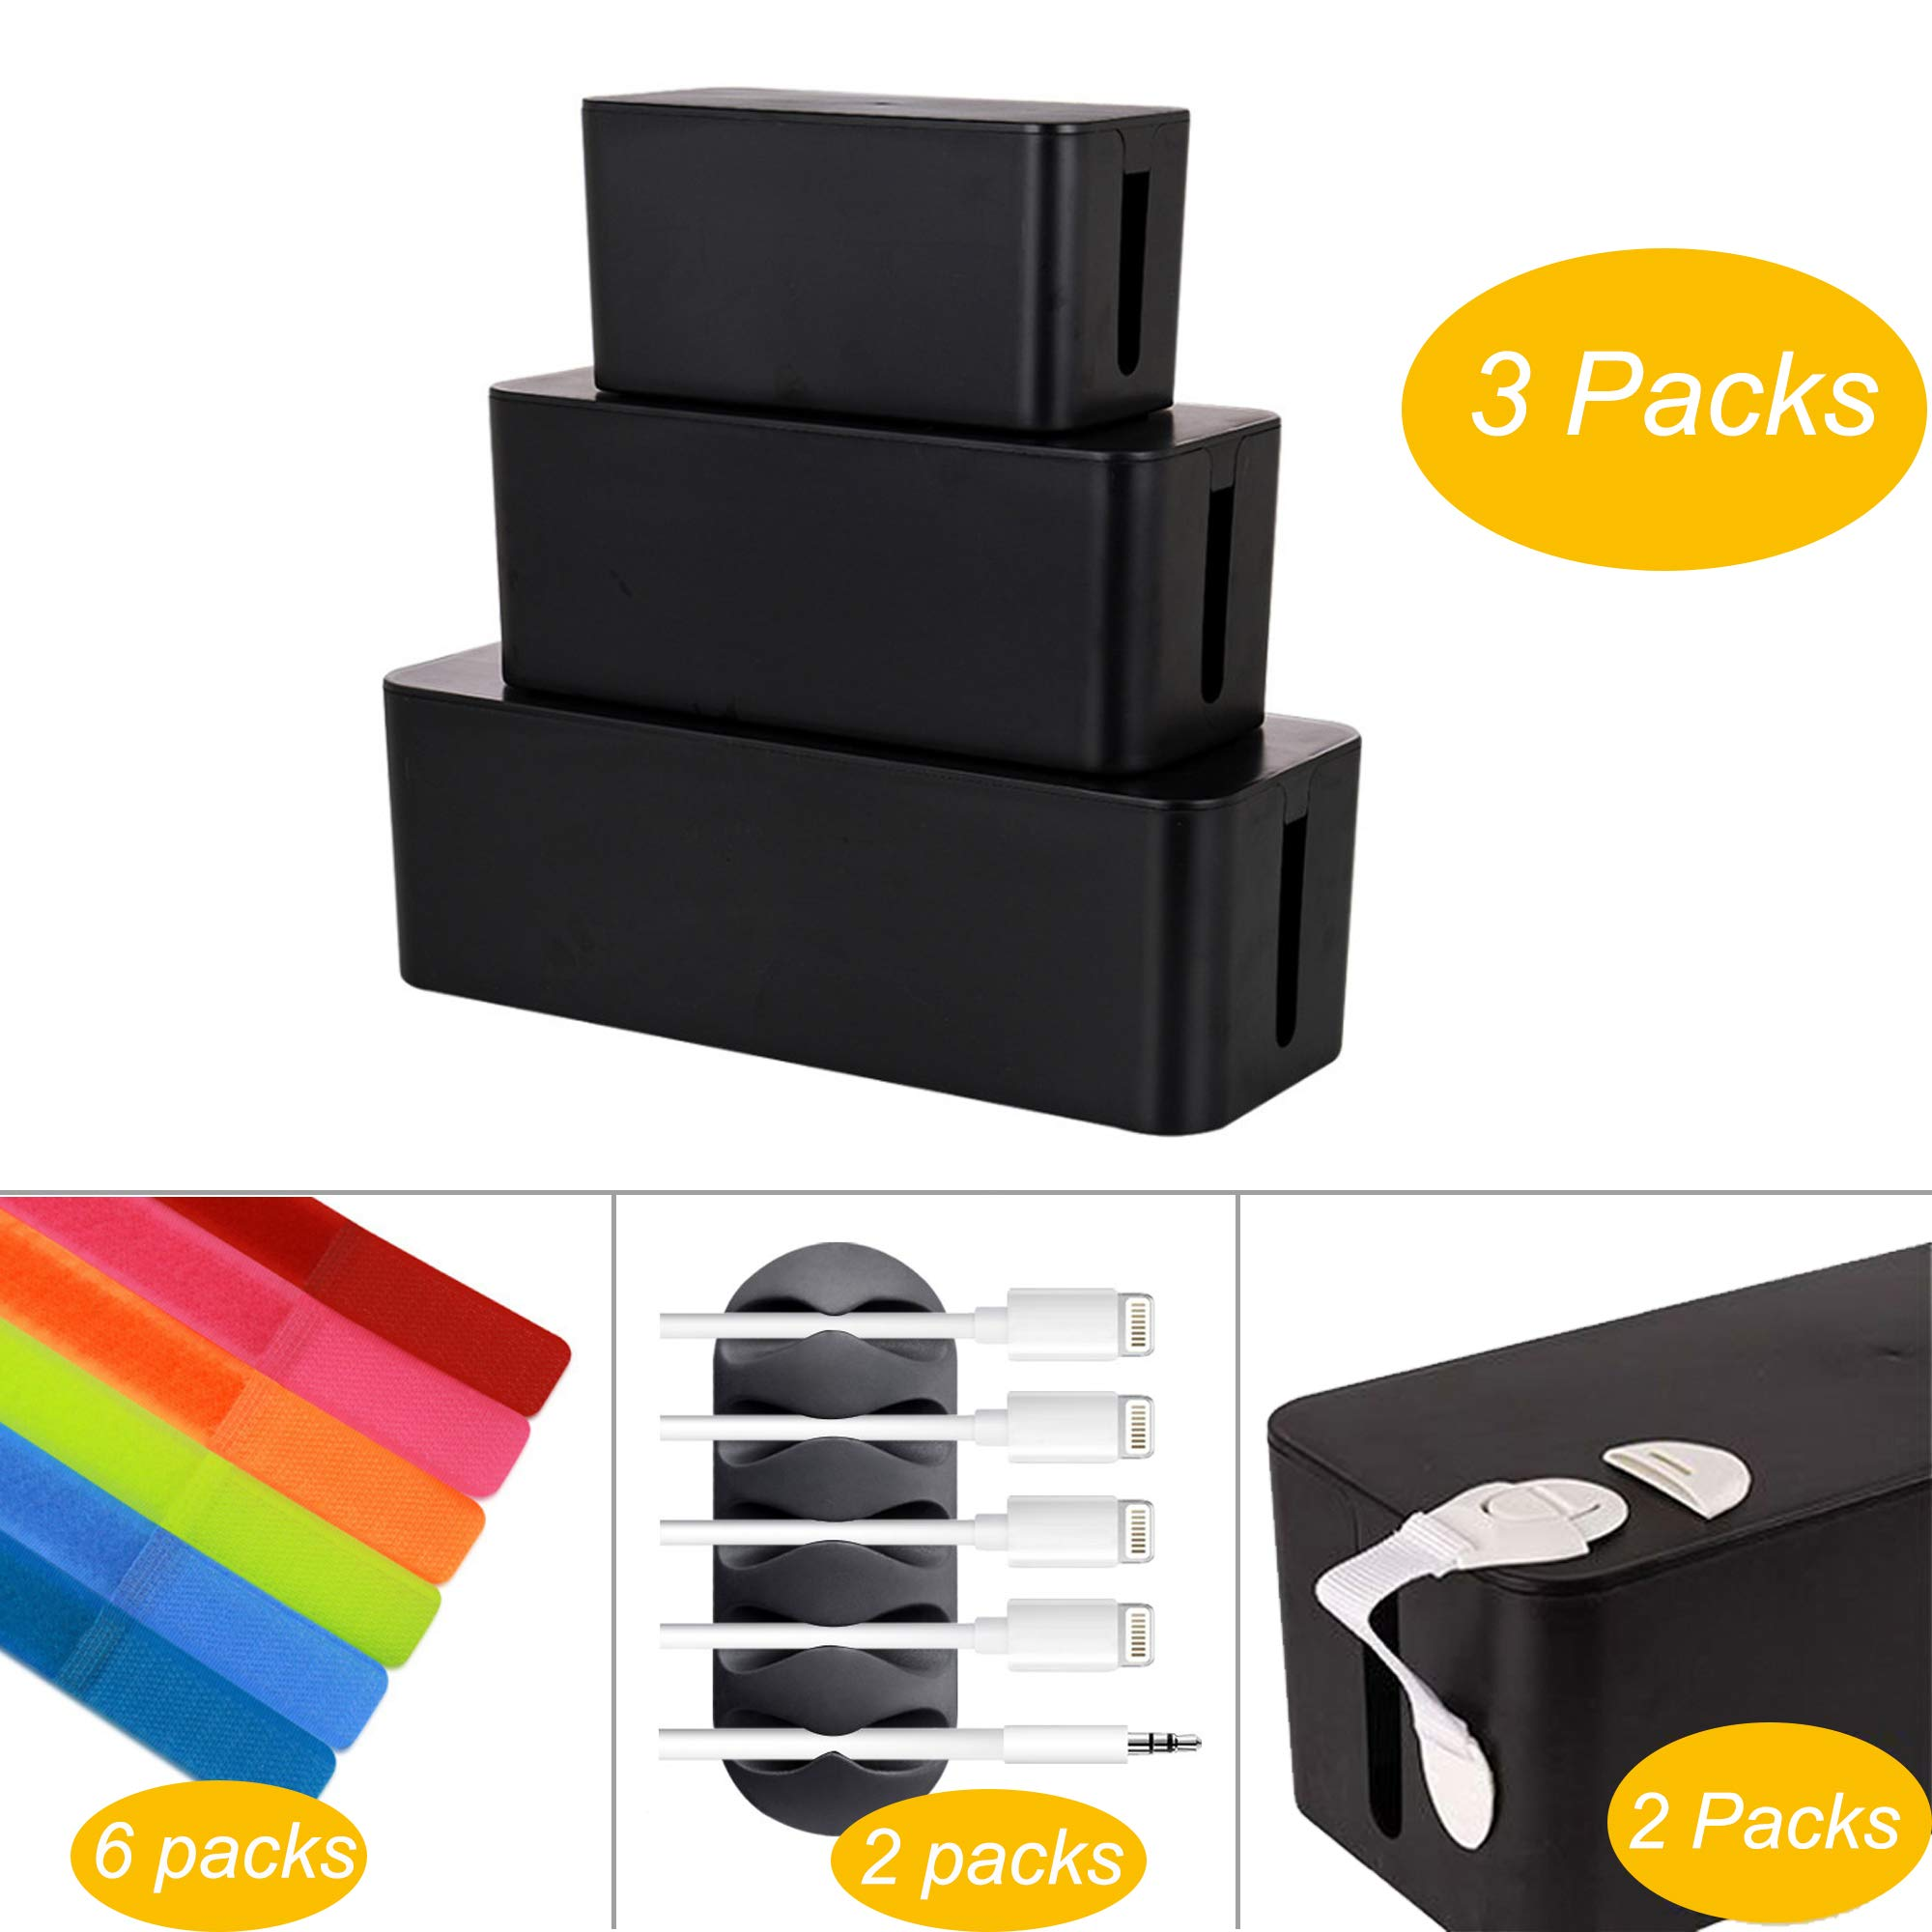 3 Sets Cable Management Box Organizer, 6 Reusable Wire Ties, 2 Cable Clips 2 Baby Safety Locks, Power Strips Hider Cord Storage, Home Office Electric Wires & Surge Protector Cover (Black)